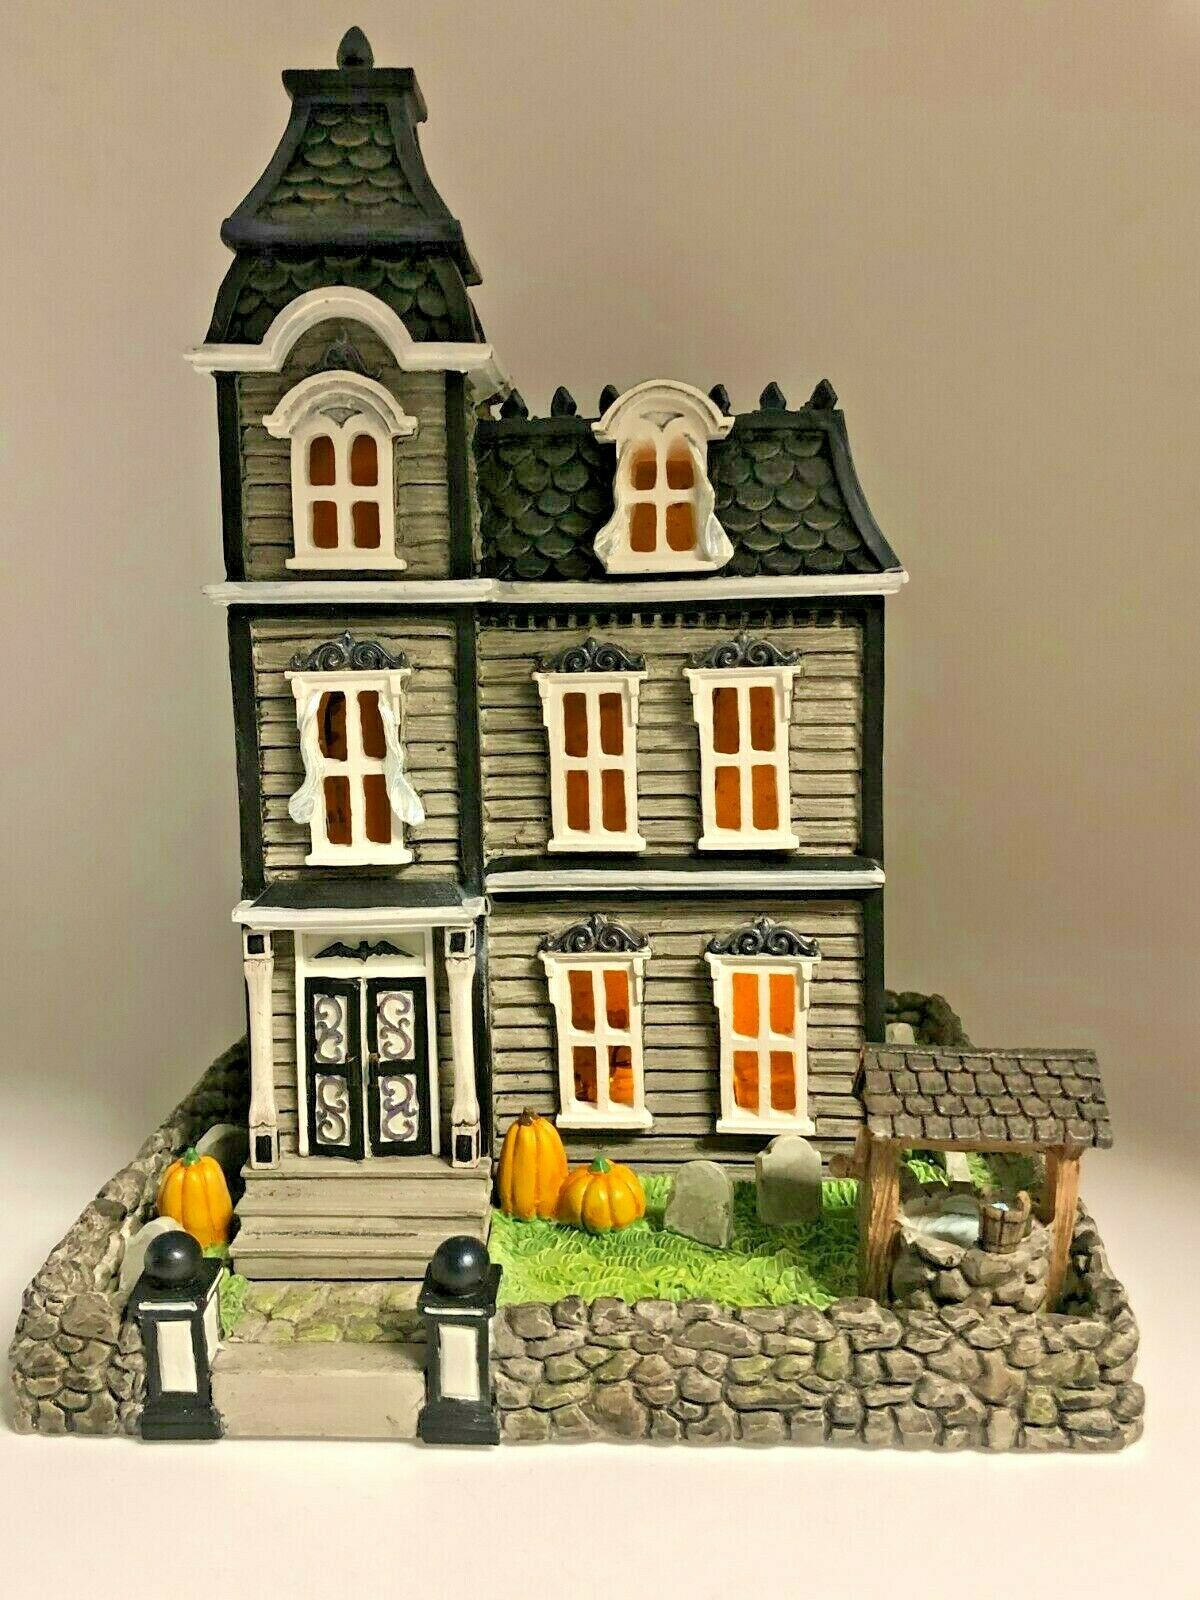 Lenox Halloween Lighted Haunted House Pumpkins Tombstones Scary Well Decoration - $180.00